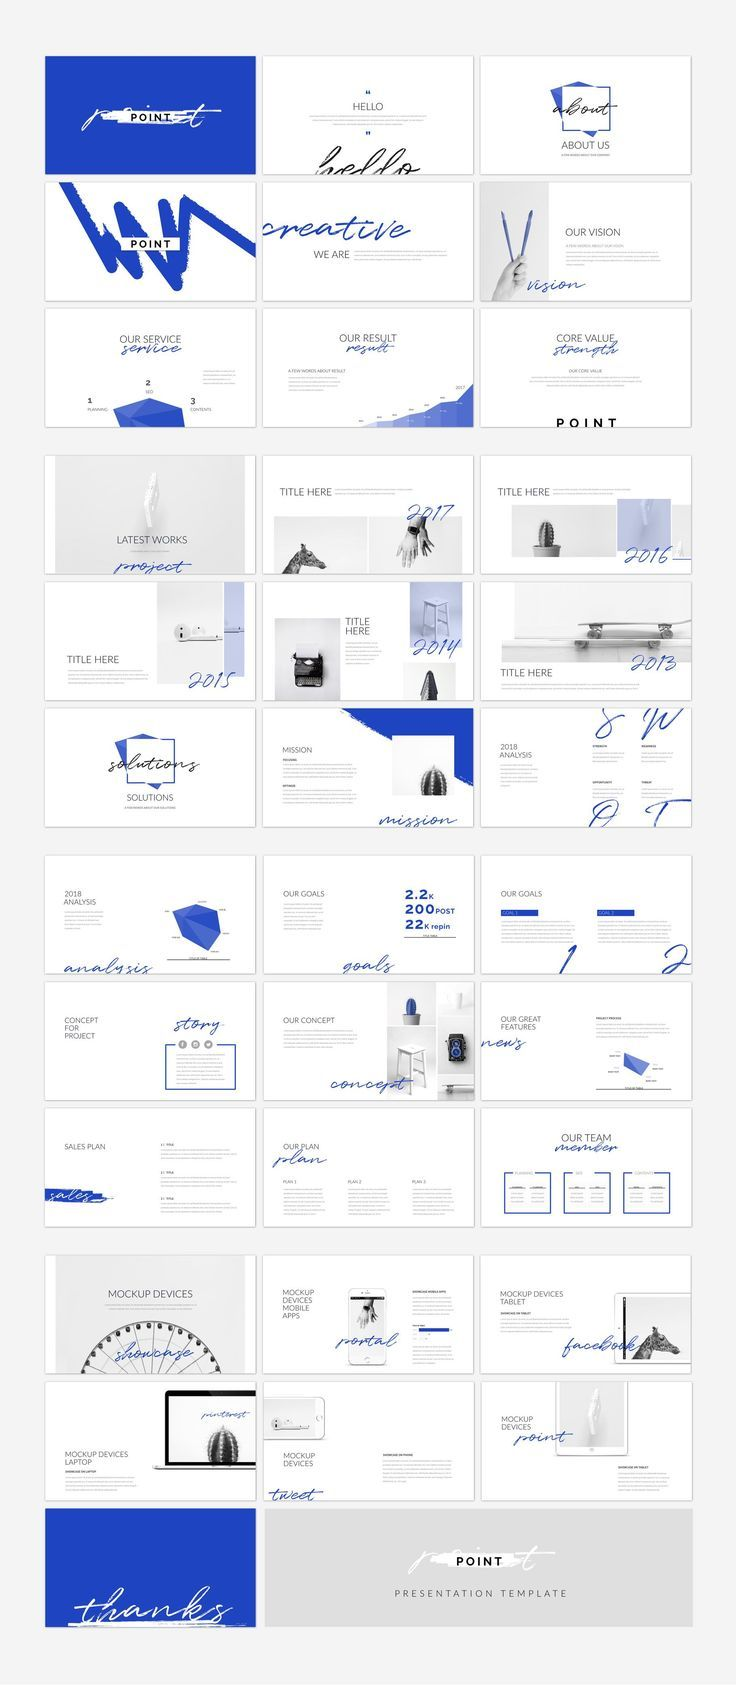 Best Free Presentation Templates Images On Pinterest - Fresh powerpoint pitch book template concept